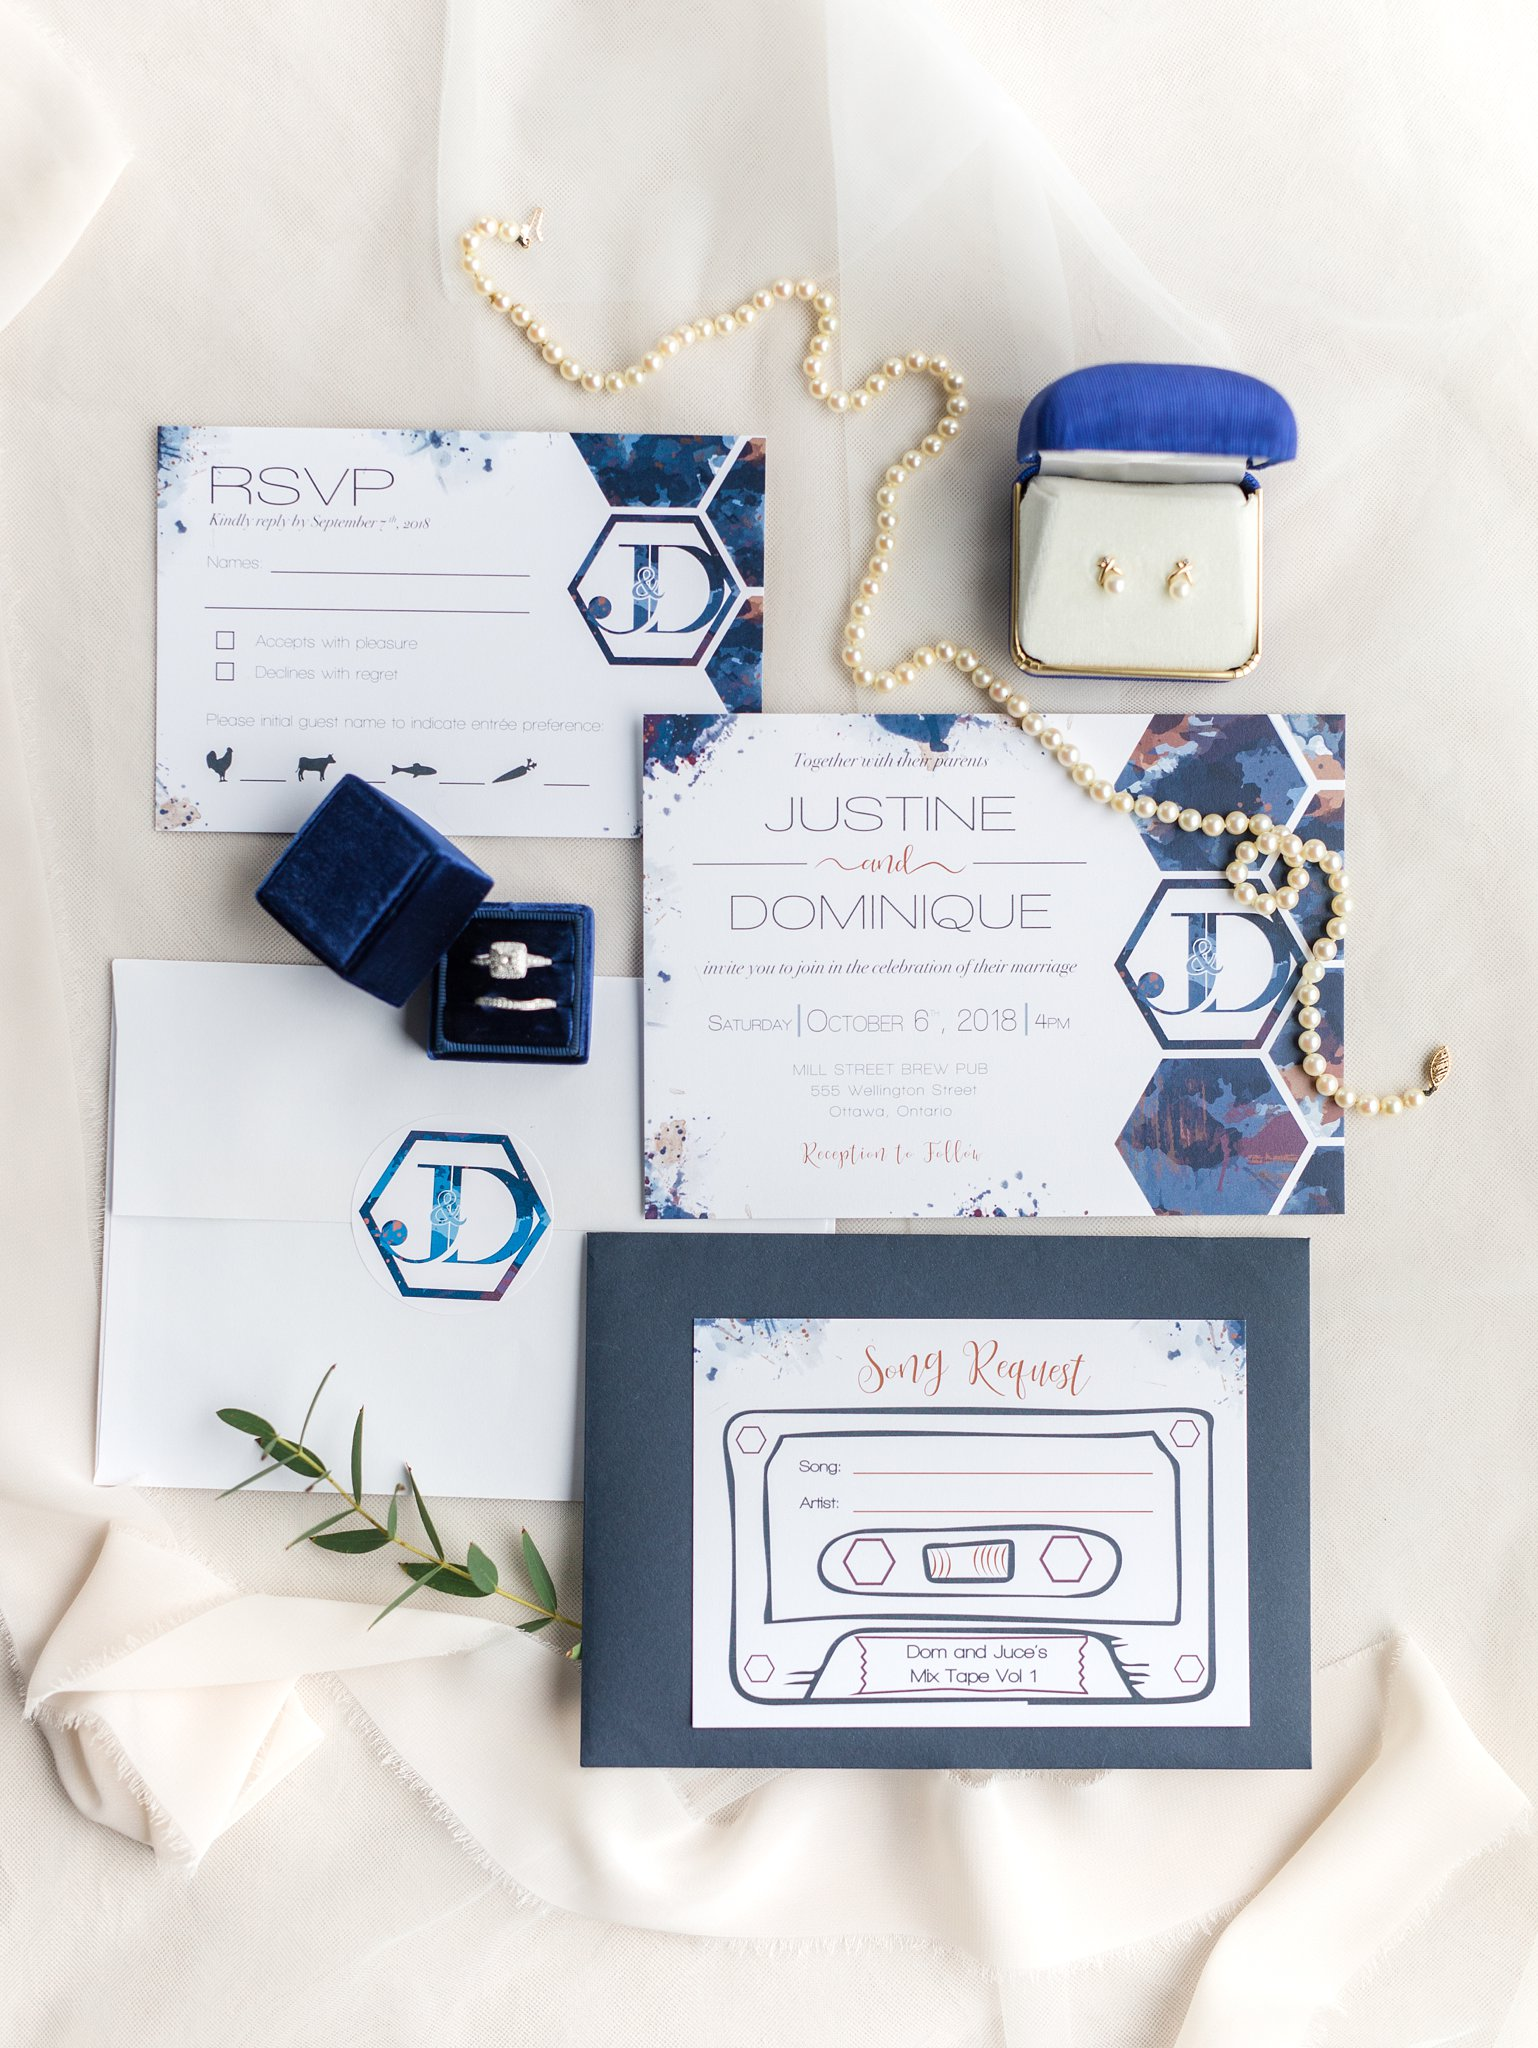 Custom wedding invitations with cassette tape song request sheet Fall Wedding Photos Ottawa Mill Street Brew Pub